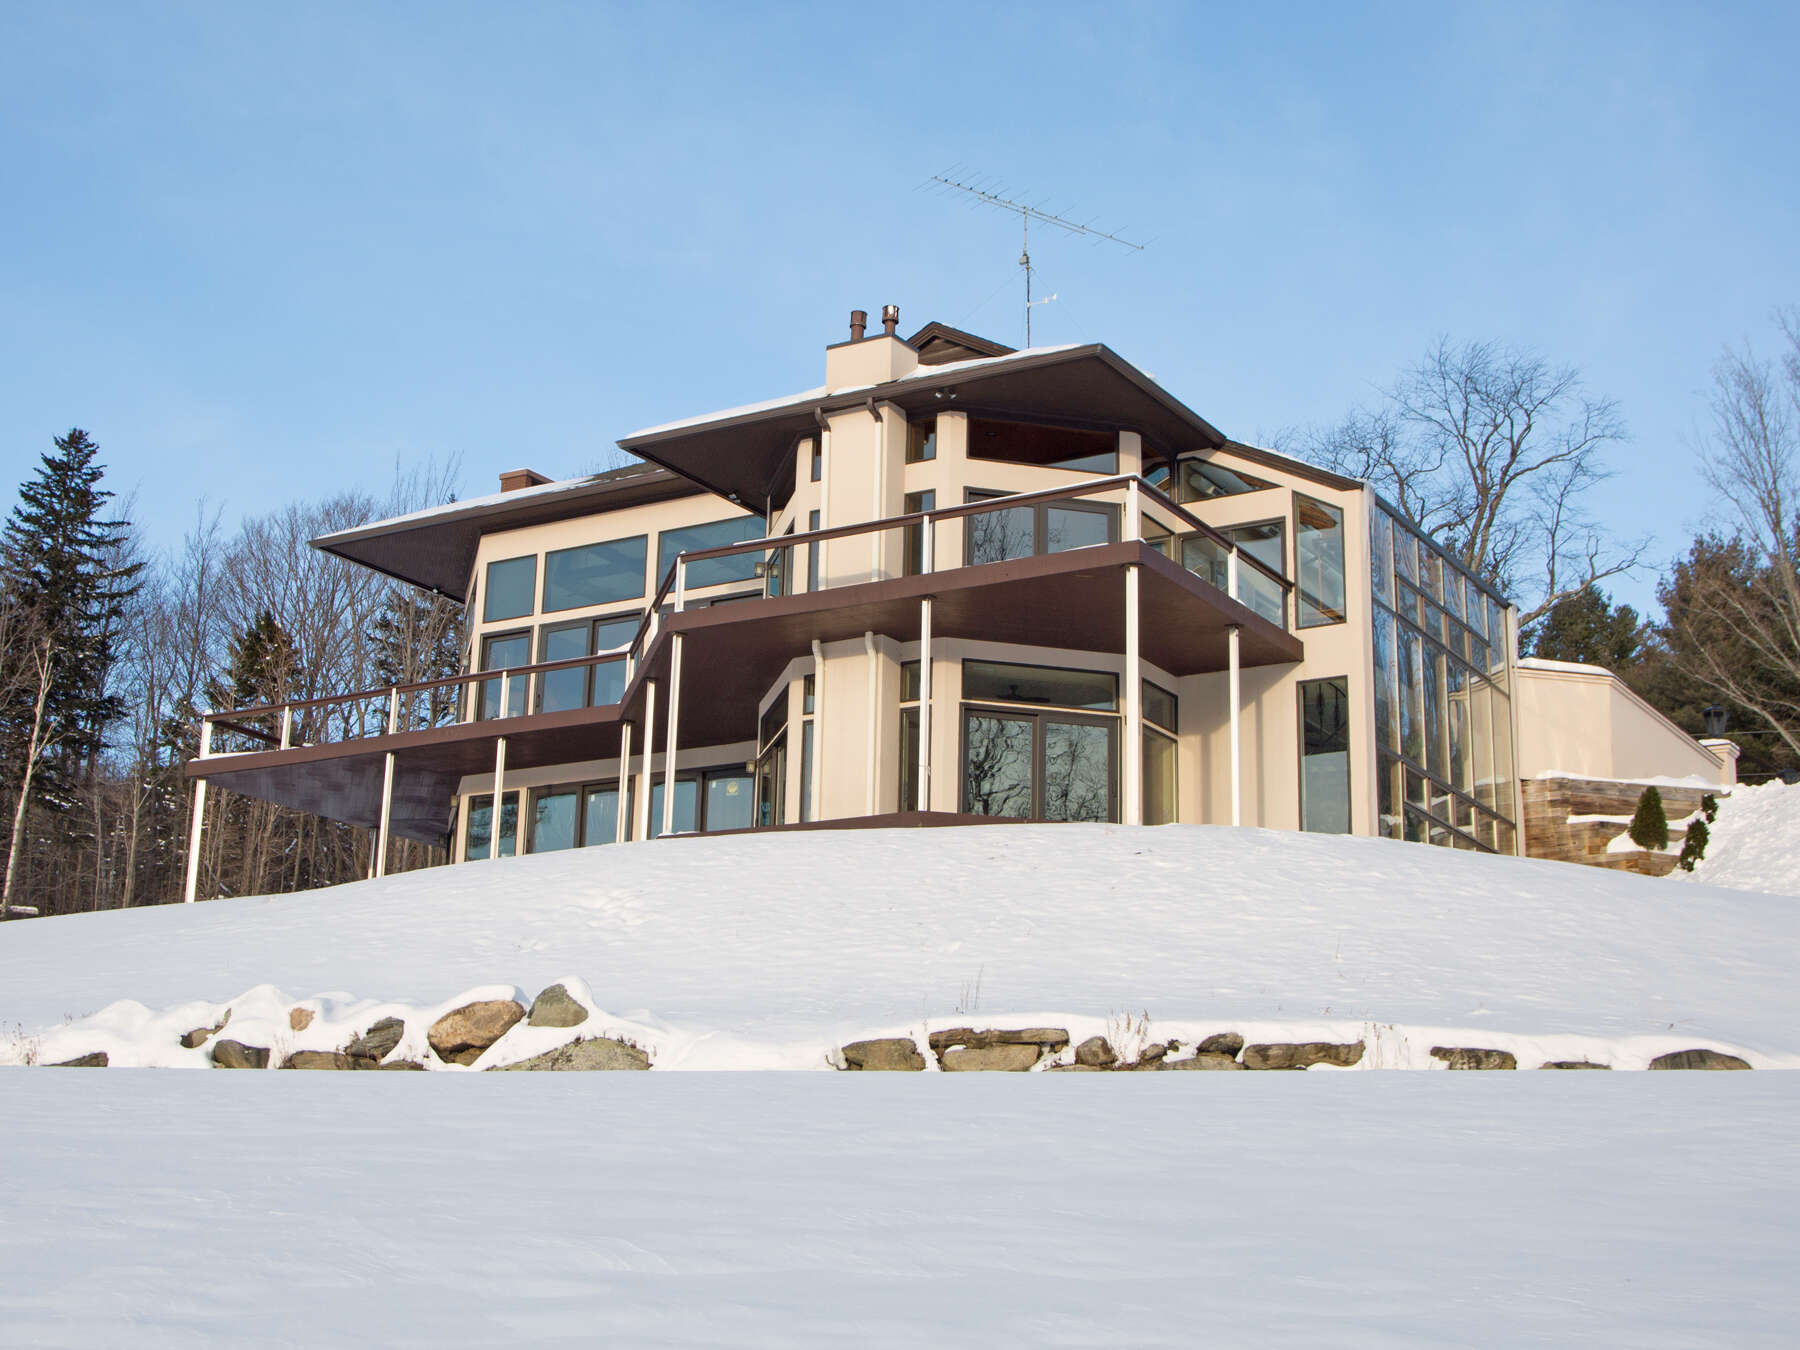 Single Family for Sale at 501 Stagecoach Rd Road Fayston, Vermont 05673 United States